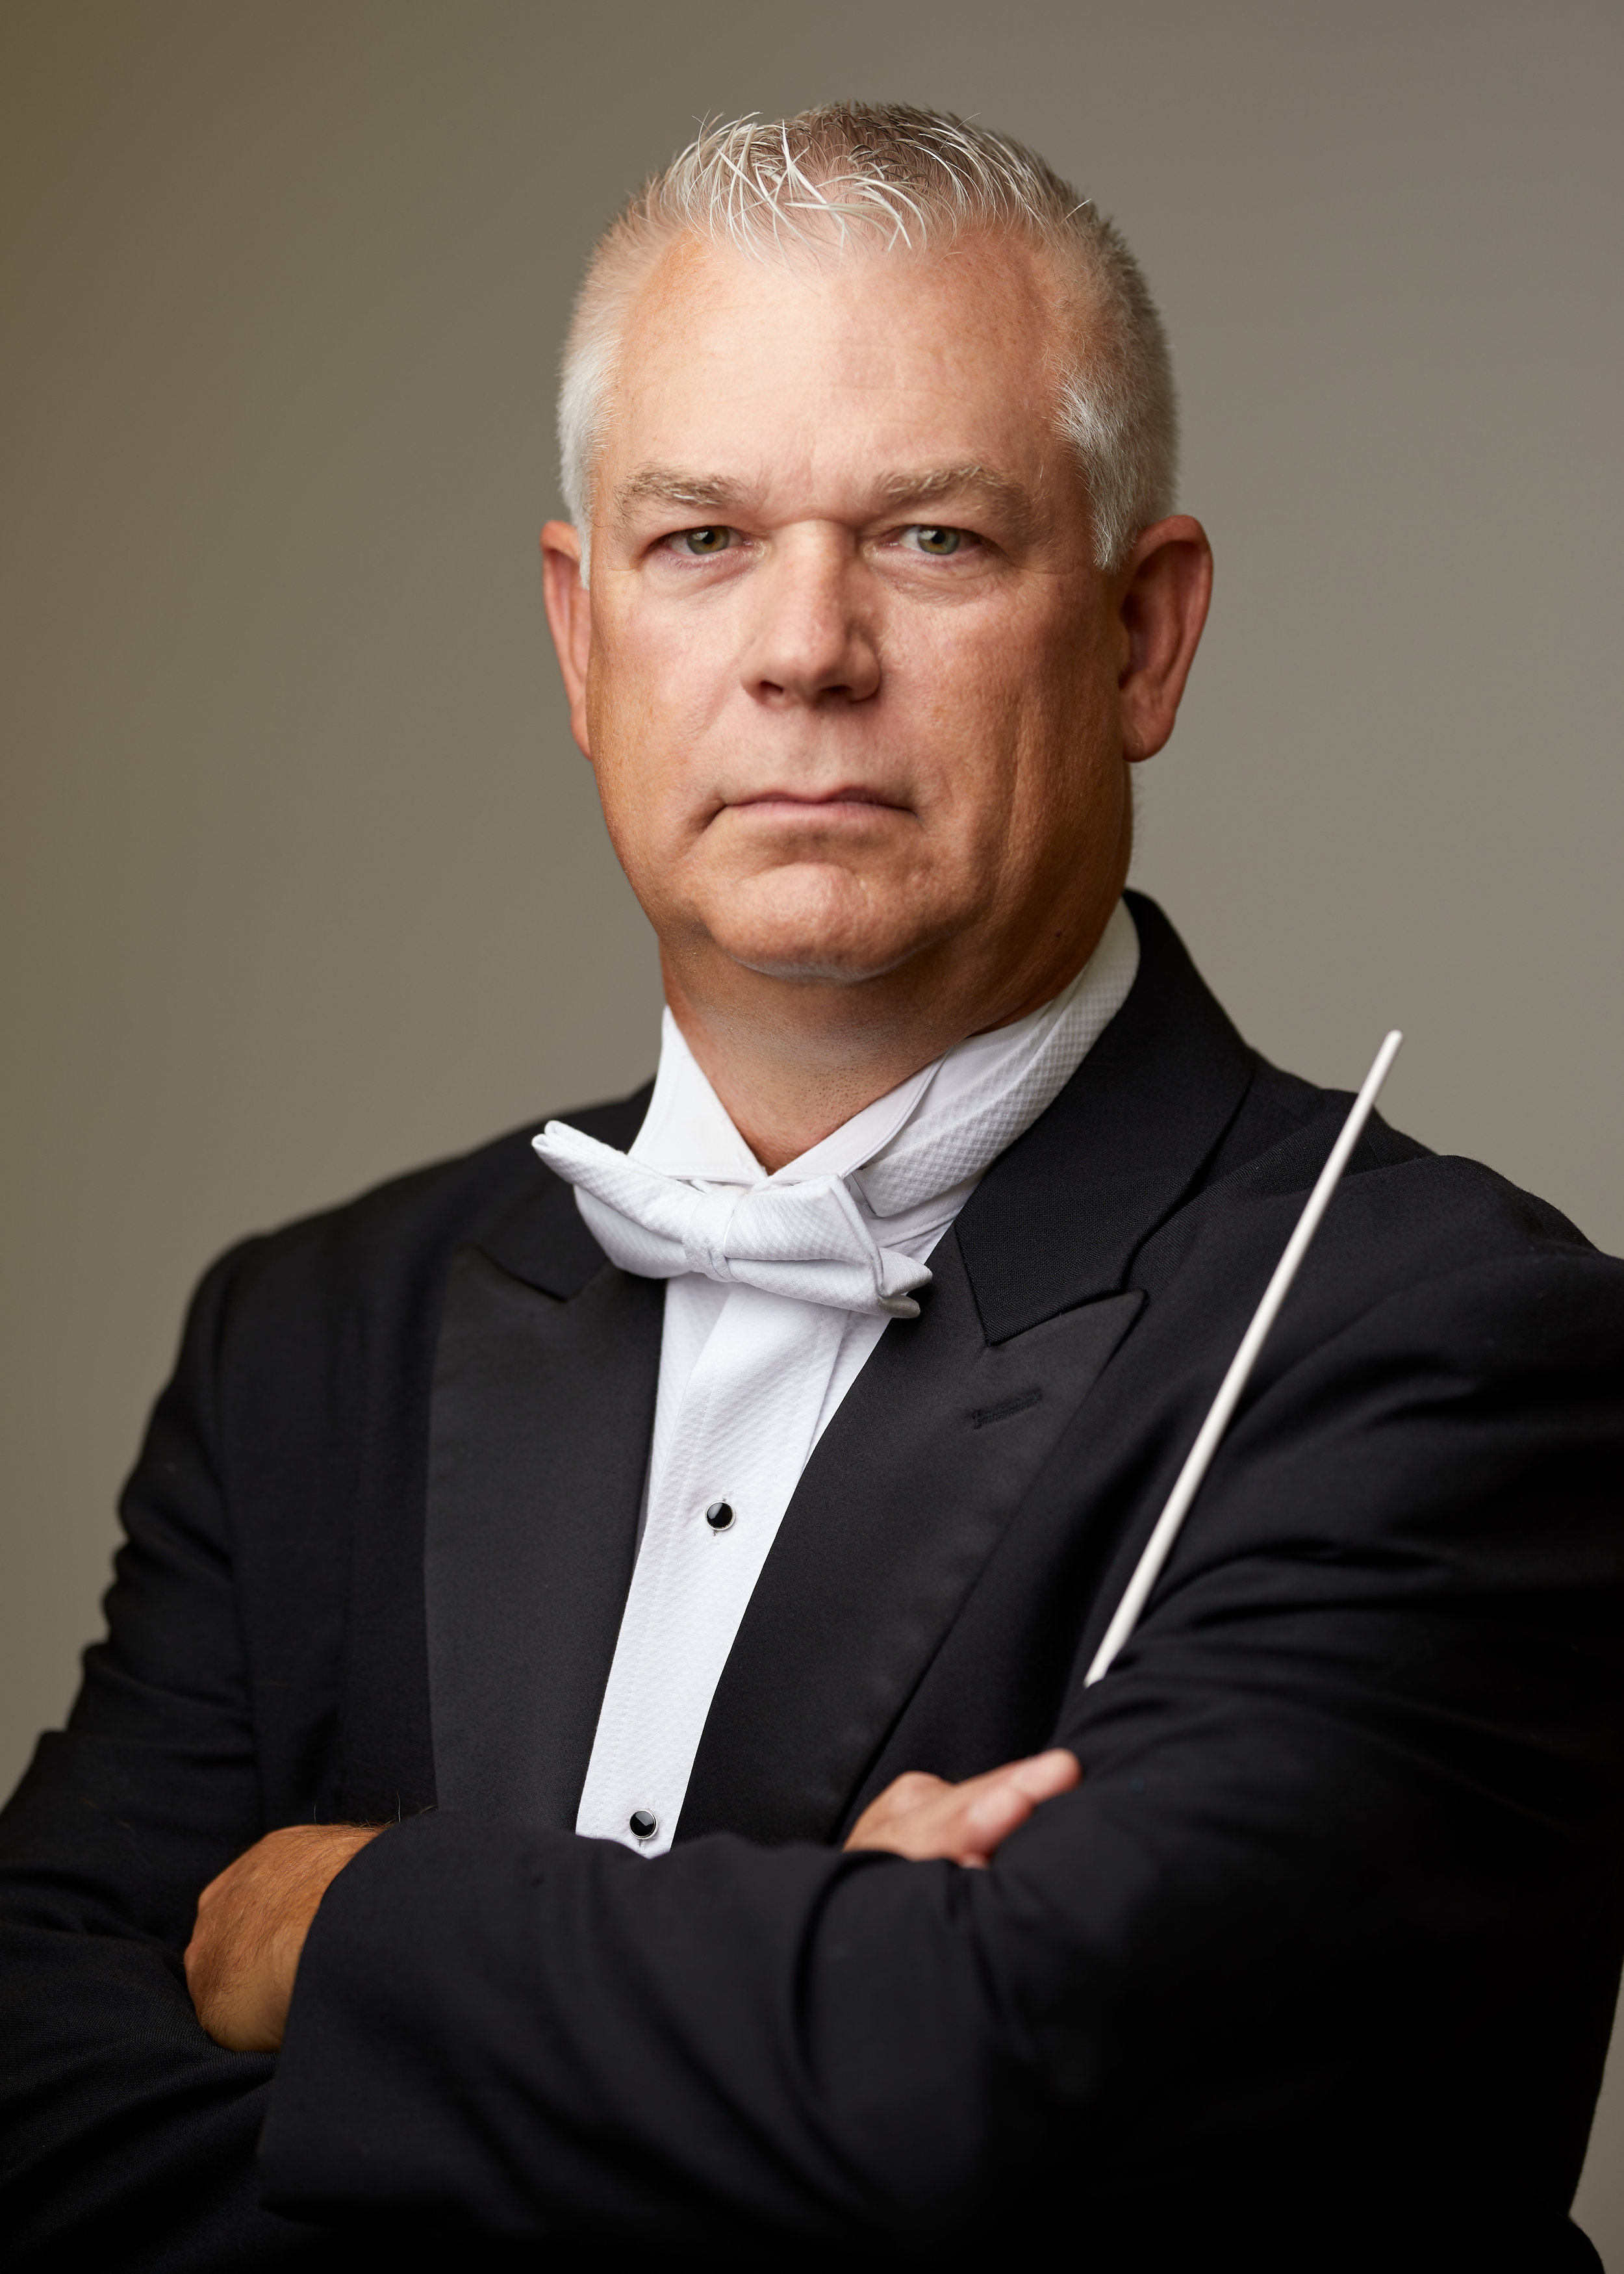 REX BARKER,DIRECTOR OF INSTRUMENTAL MUSIC B.F.A., Kearney State College, M.M.E., University of Nebraska, Omaha - Rex Barker has been at Midland University since the fall of 2015 as the Director of Instrumental Music. He was also Director of Performing Arts 2016-2018. He is also the Music Director of the Omaha Symphonic Winds, an adult- community band. He received the Donald A. Lentz Outstanding Bandmaster Award from the Nebraska State Bandmasters Association, which recognizes an individual who has made an outstanding contribution throughout his career. Rex was a teacher, director, and head of the music department in a 27-year career at Millard South High School in Omaha. He also served as head of instrumental music for all Millard Public Schools. In 2014, Rex was also named the